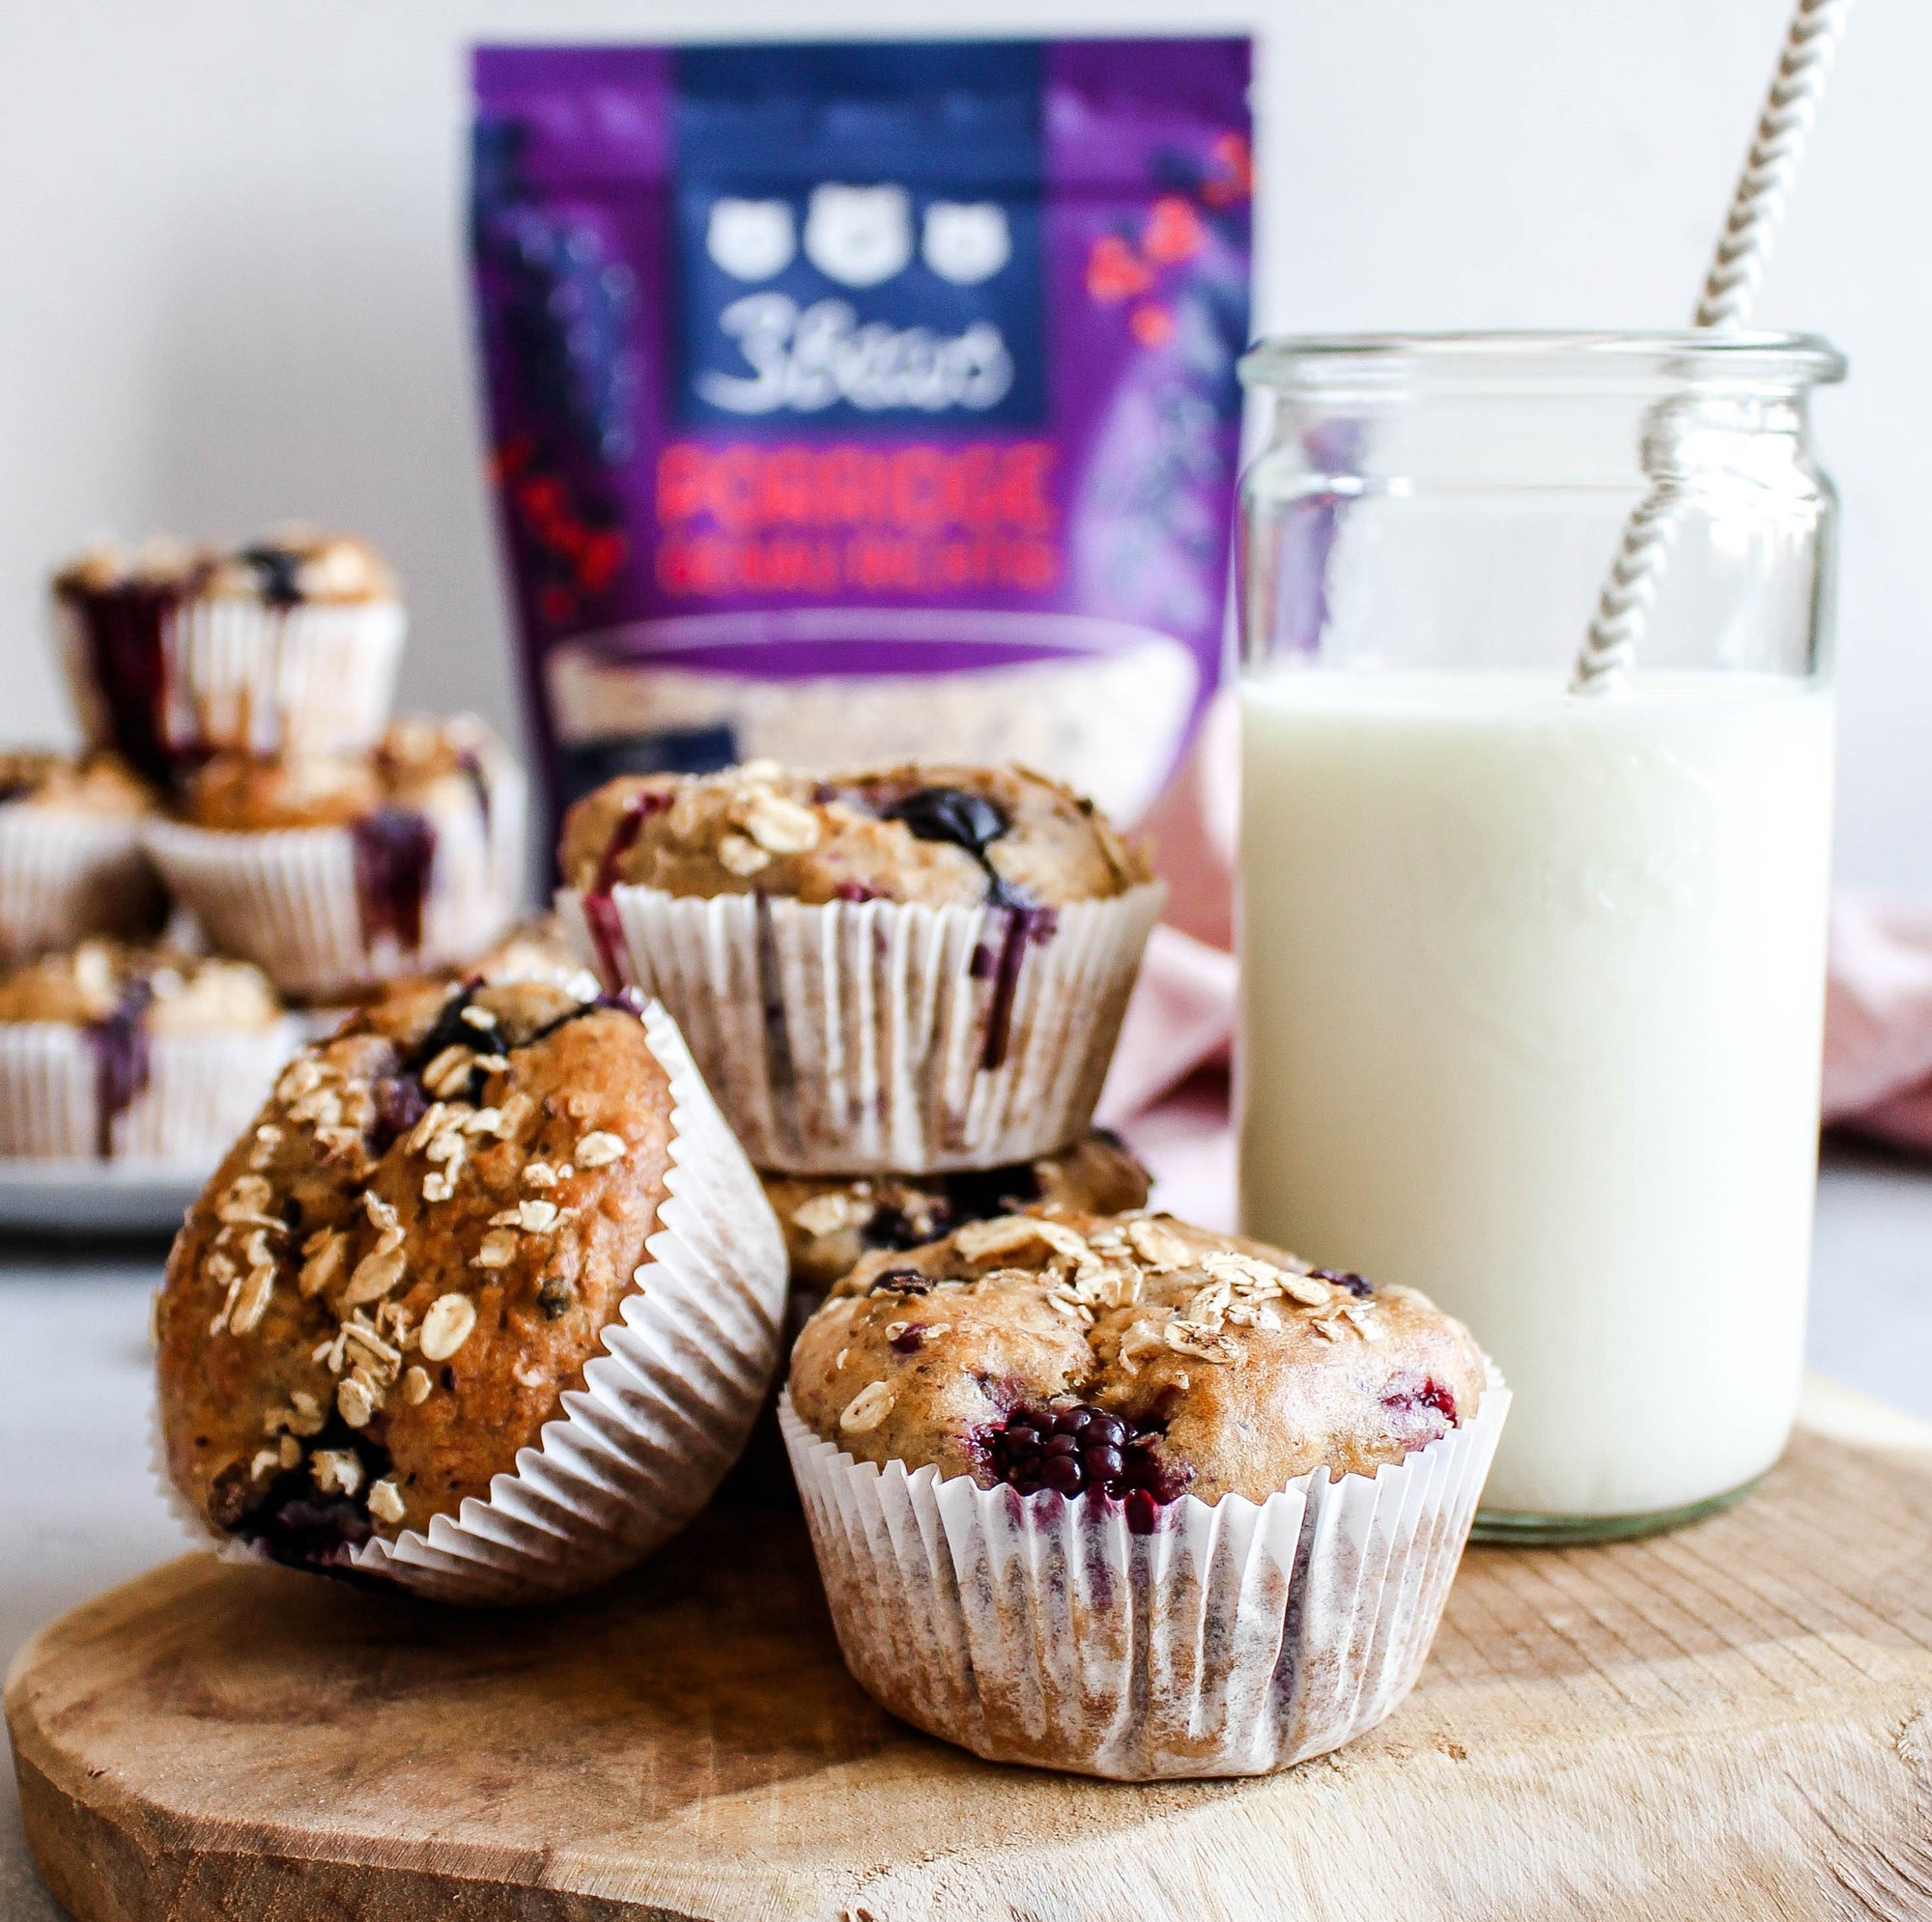 Berry banana muffins - a simple recipe for every occasion